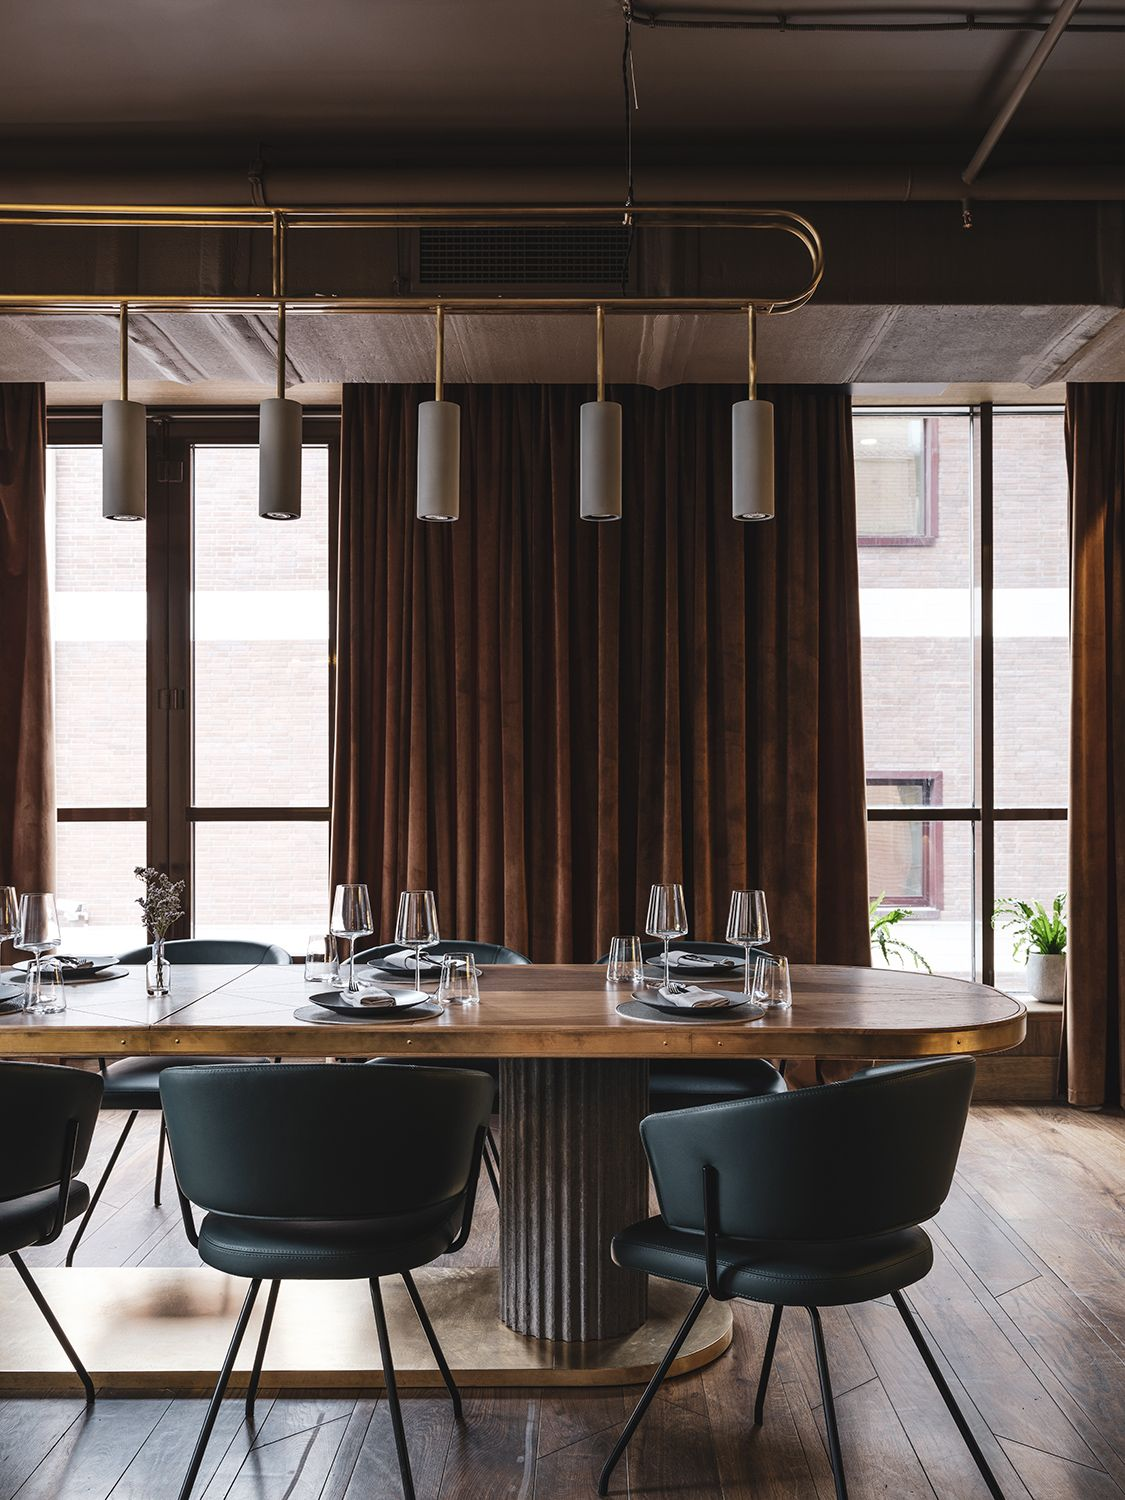 The Y Asthetique Group In 2020 Dining Table In Kitchen Communal Table Restaurant Communal Kitchen